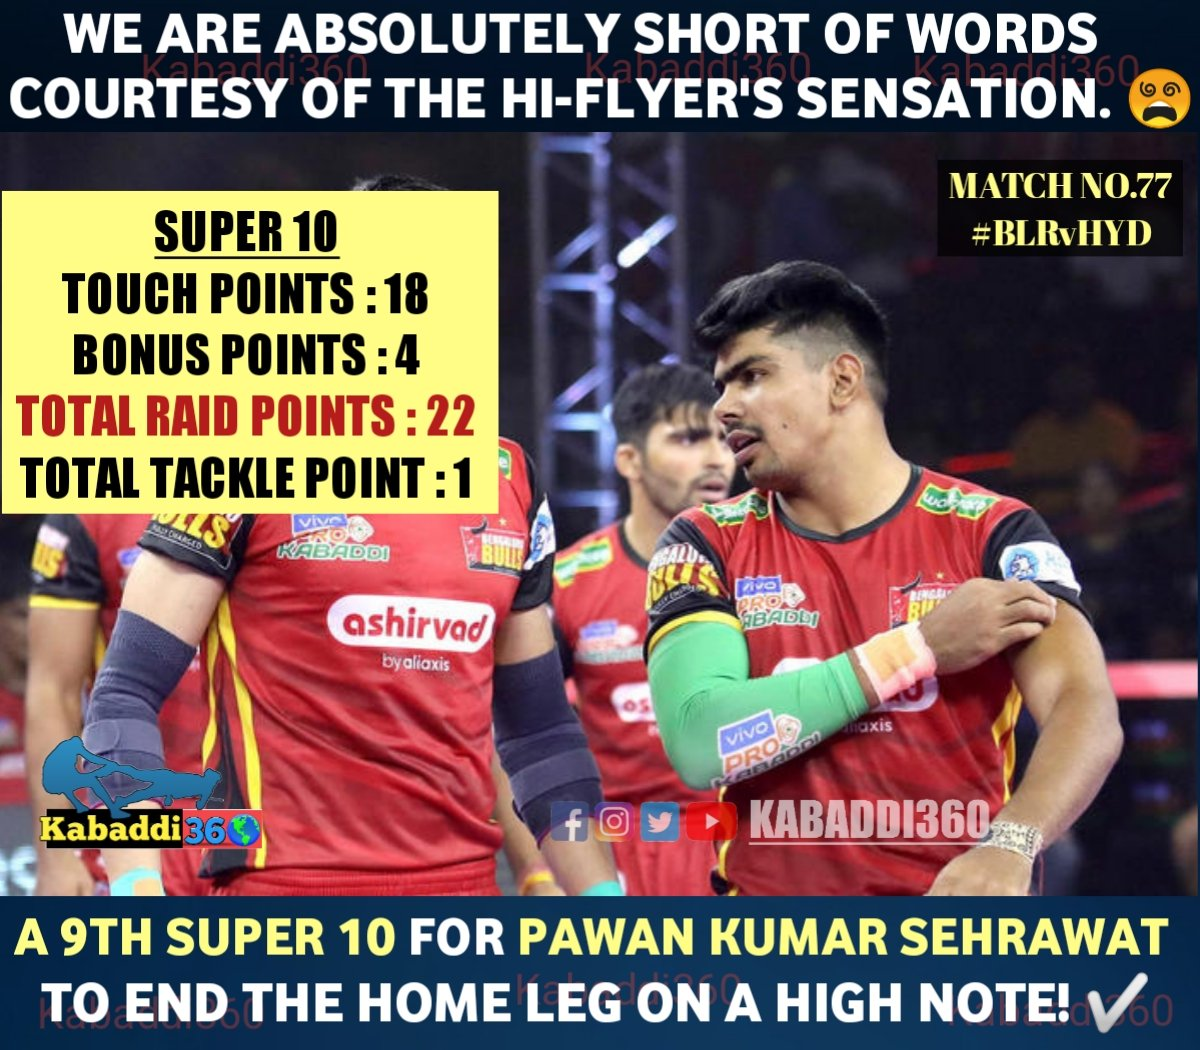 Pawan Sehrawat has been in his A-Game as Bulls end the home leg 3-1 tonight!  #PawanSehrawat  #Super10  #vivoprokabaddi  #PKLwithKabaddi360  #IsseTouchKuchNahi